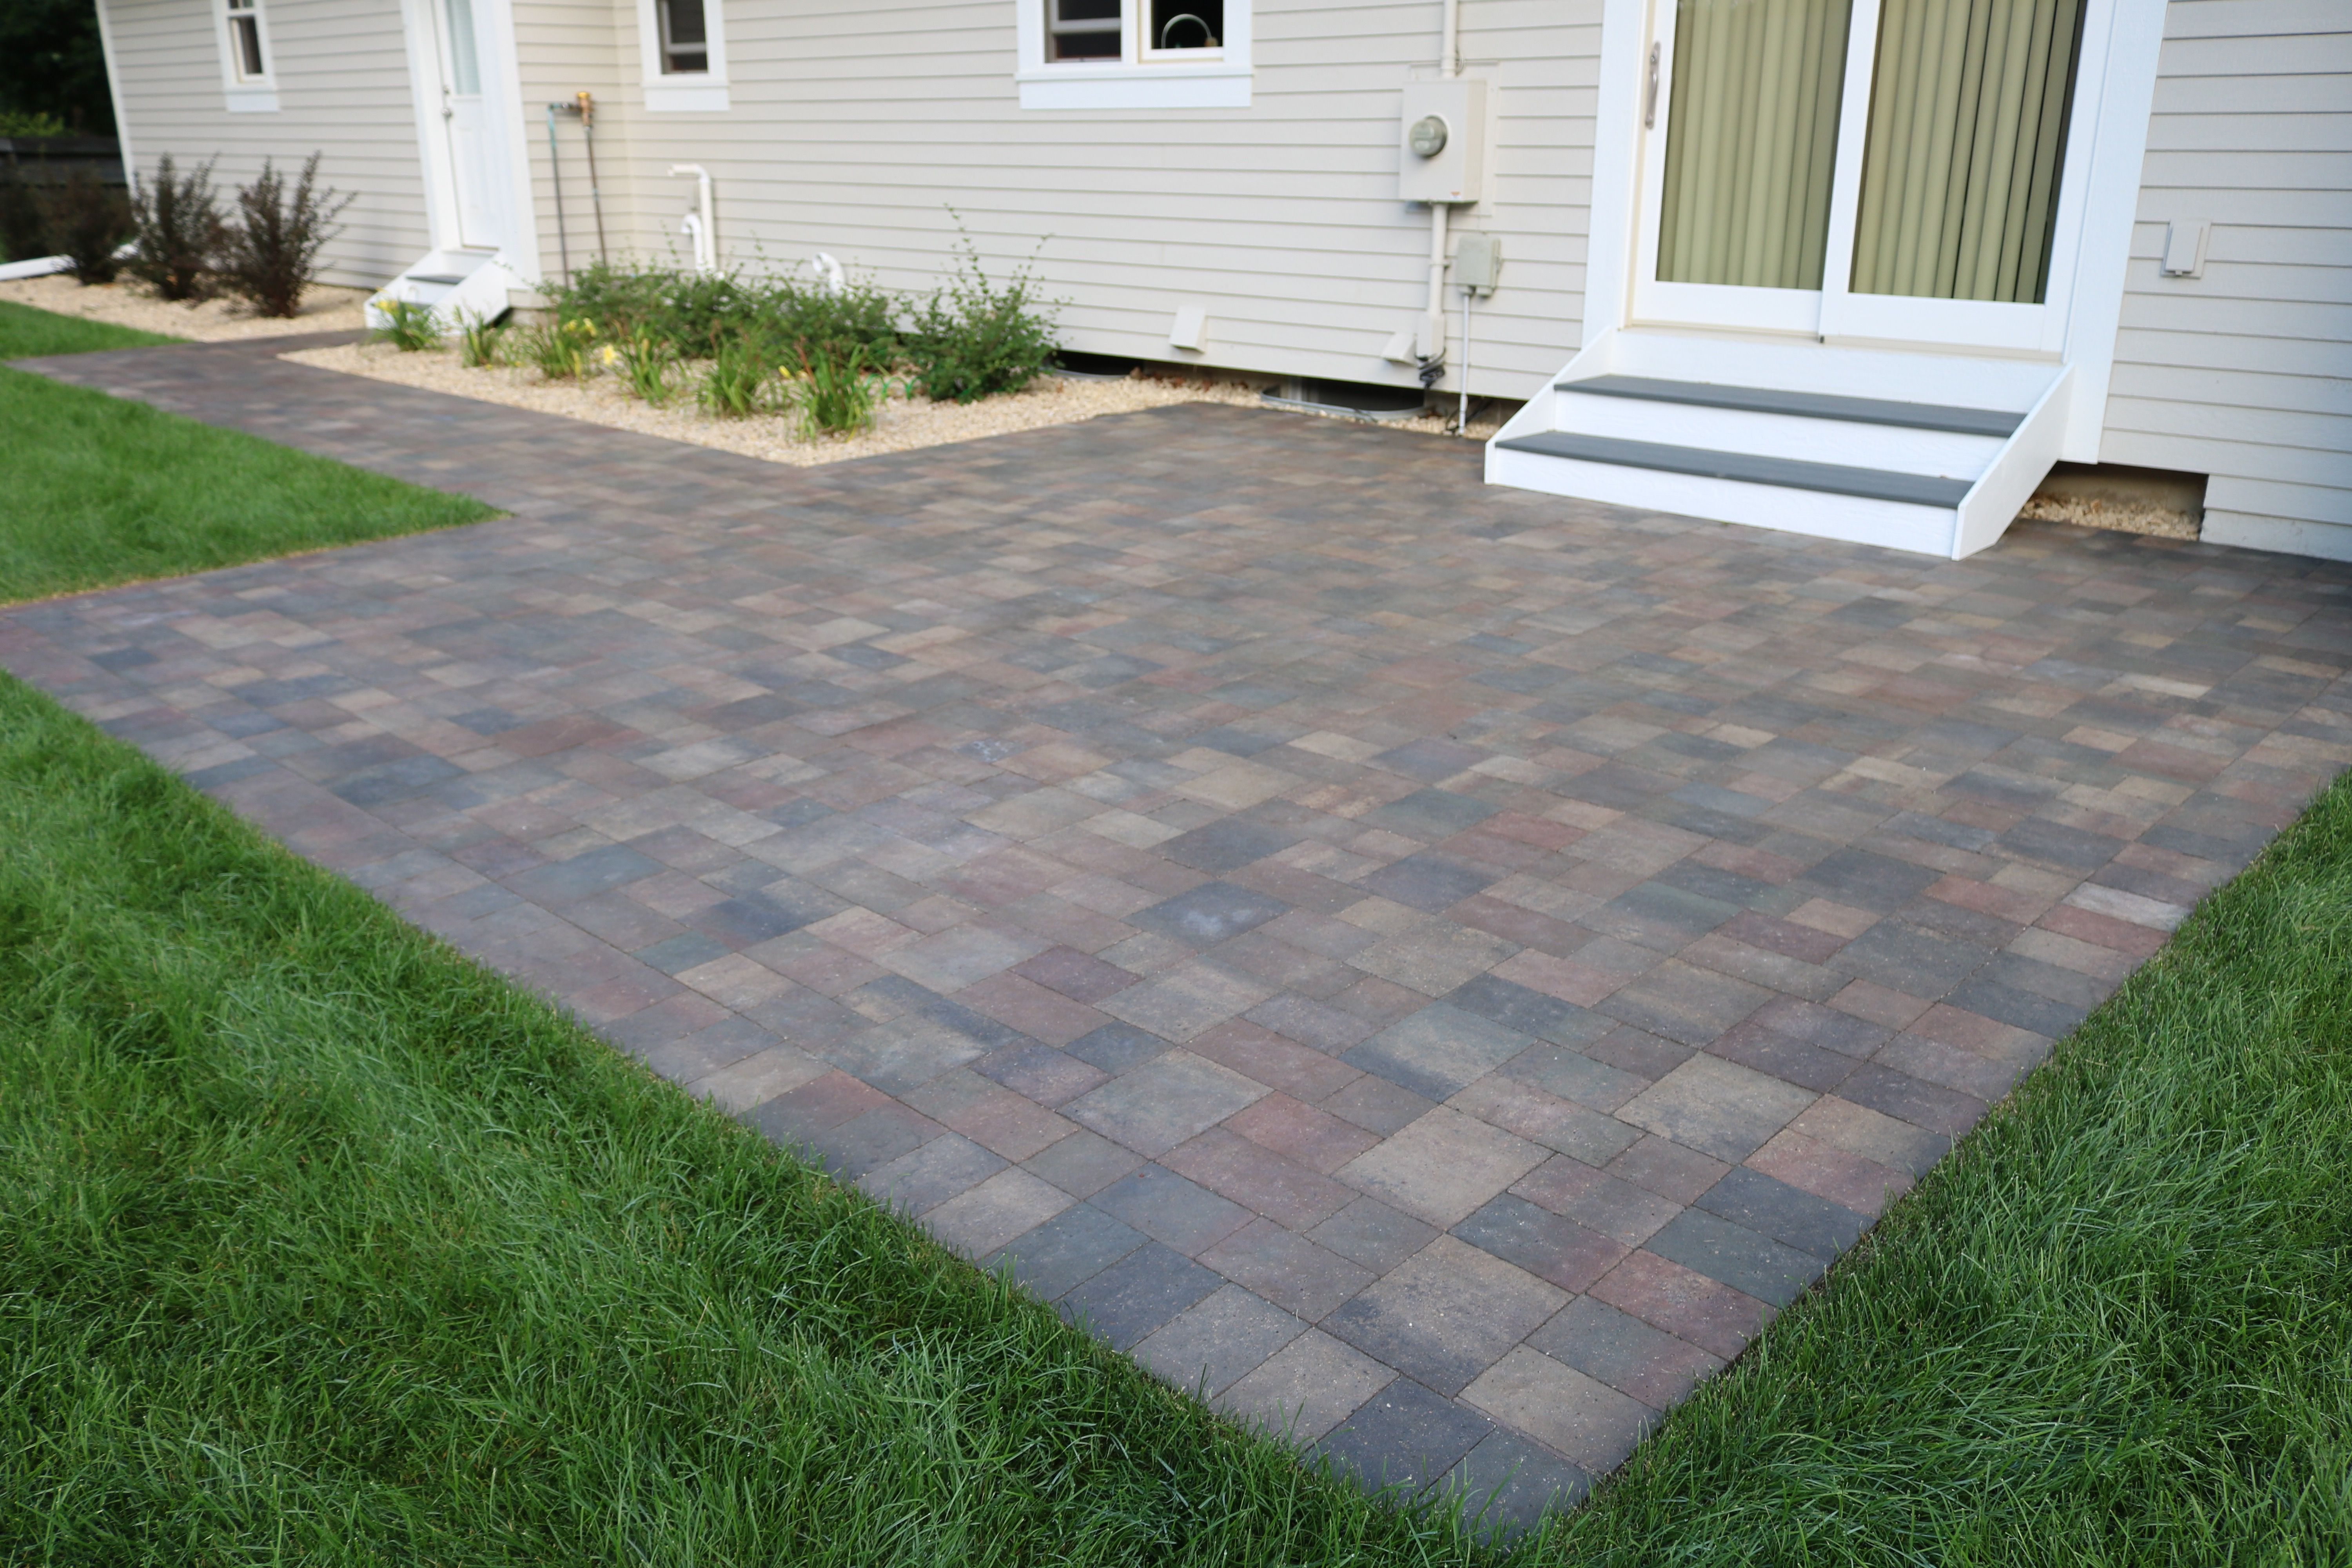 Sealing pavers by Maple Crest Landscape 2425 State Hwy 55